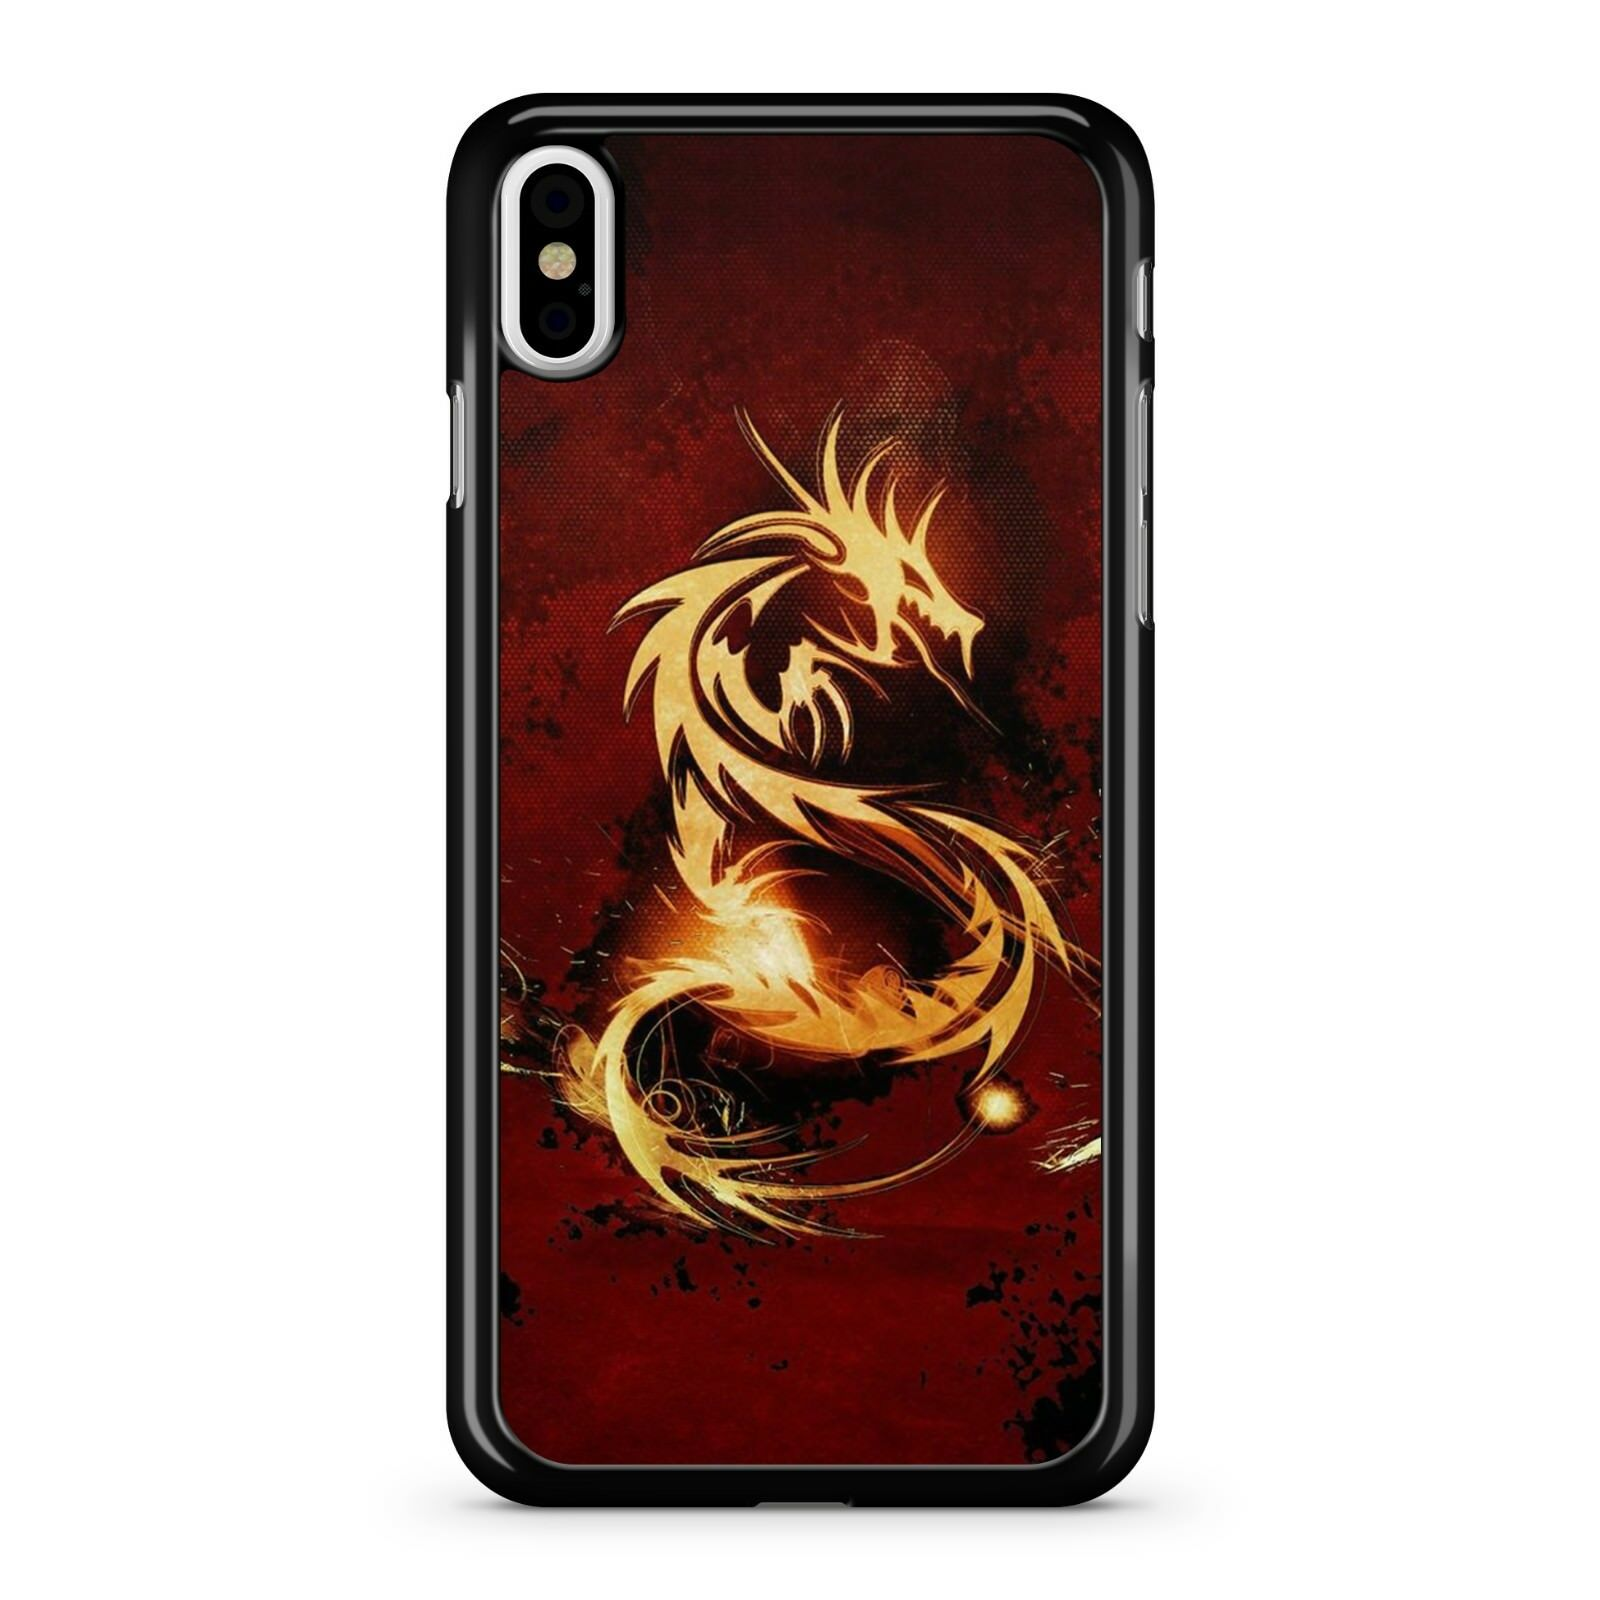 sale retailer 6ad3e 6b189 Details about Golden Mythical Supreme Dragon Drawing Red Cloudy Misty Sky  2D Phone Case Cover